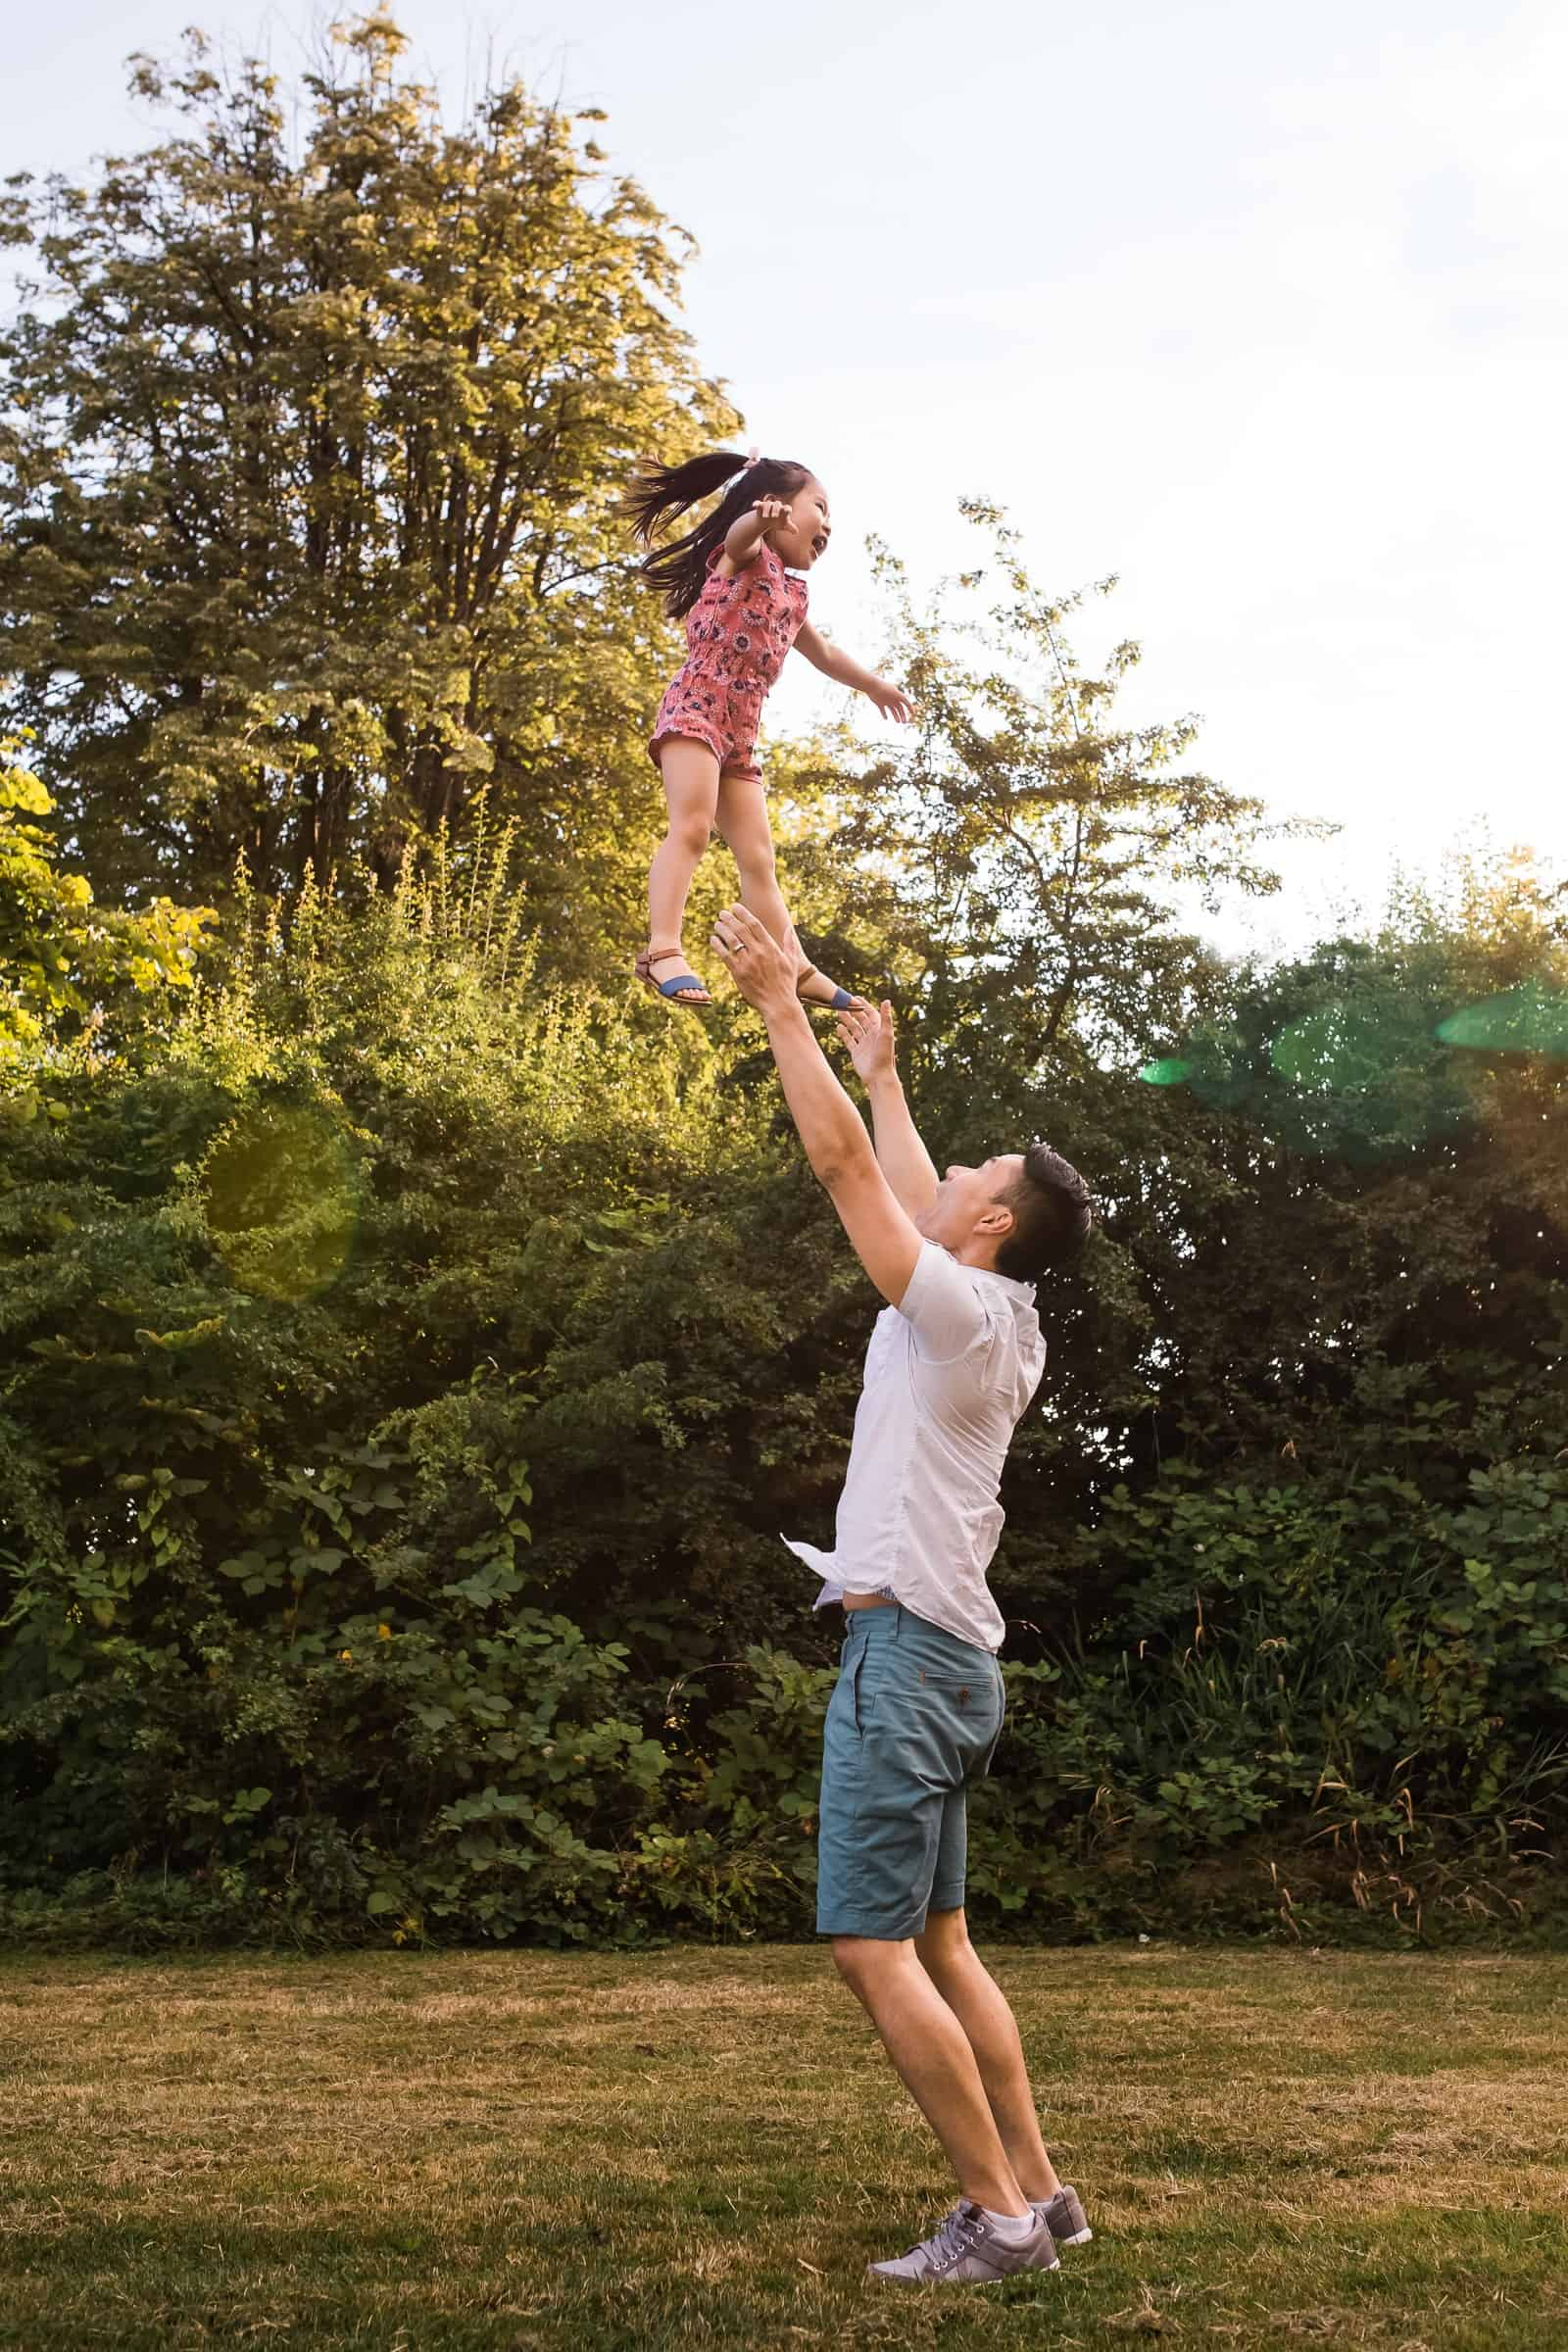 dad throwing little girl up into the air